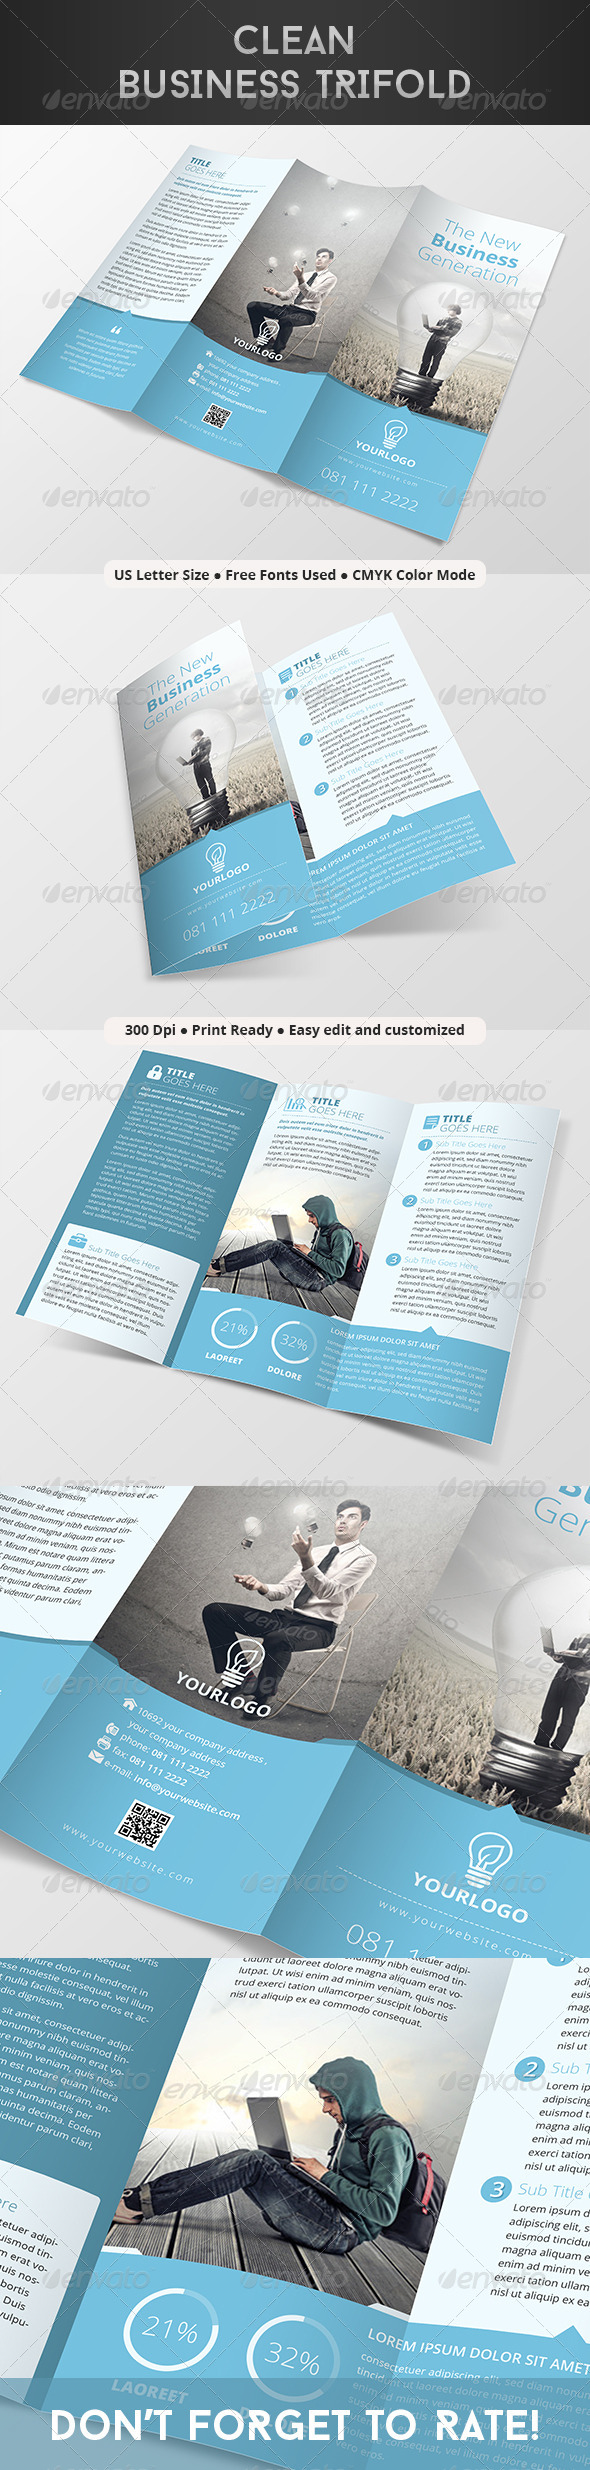 GraphicRiver Clean Business Trifold 8182839